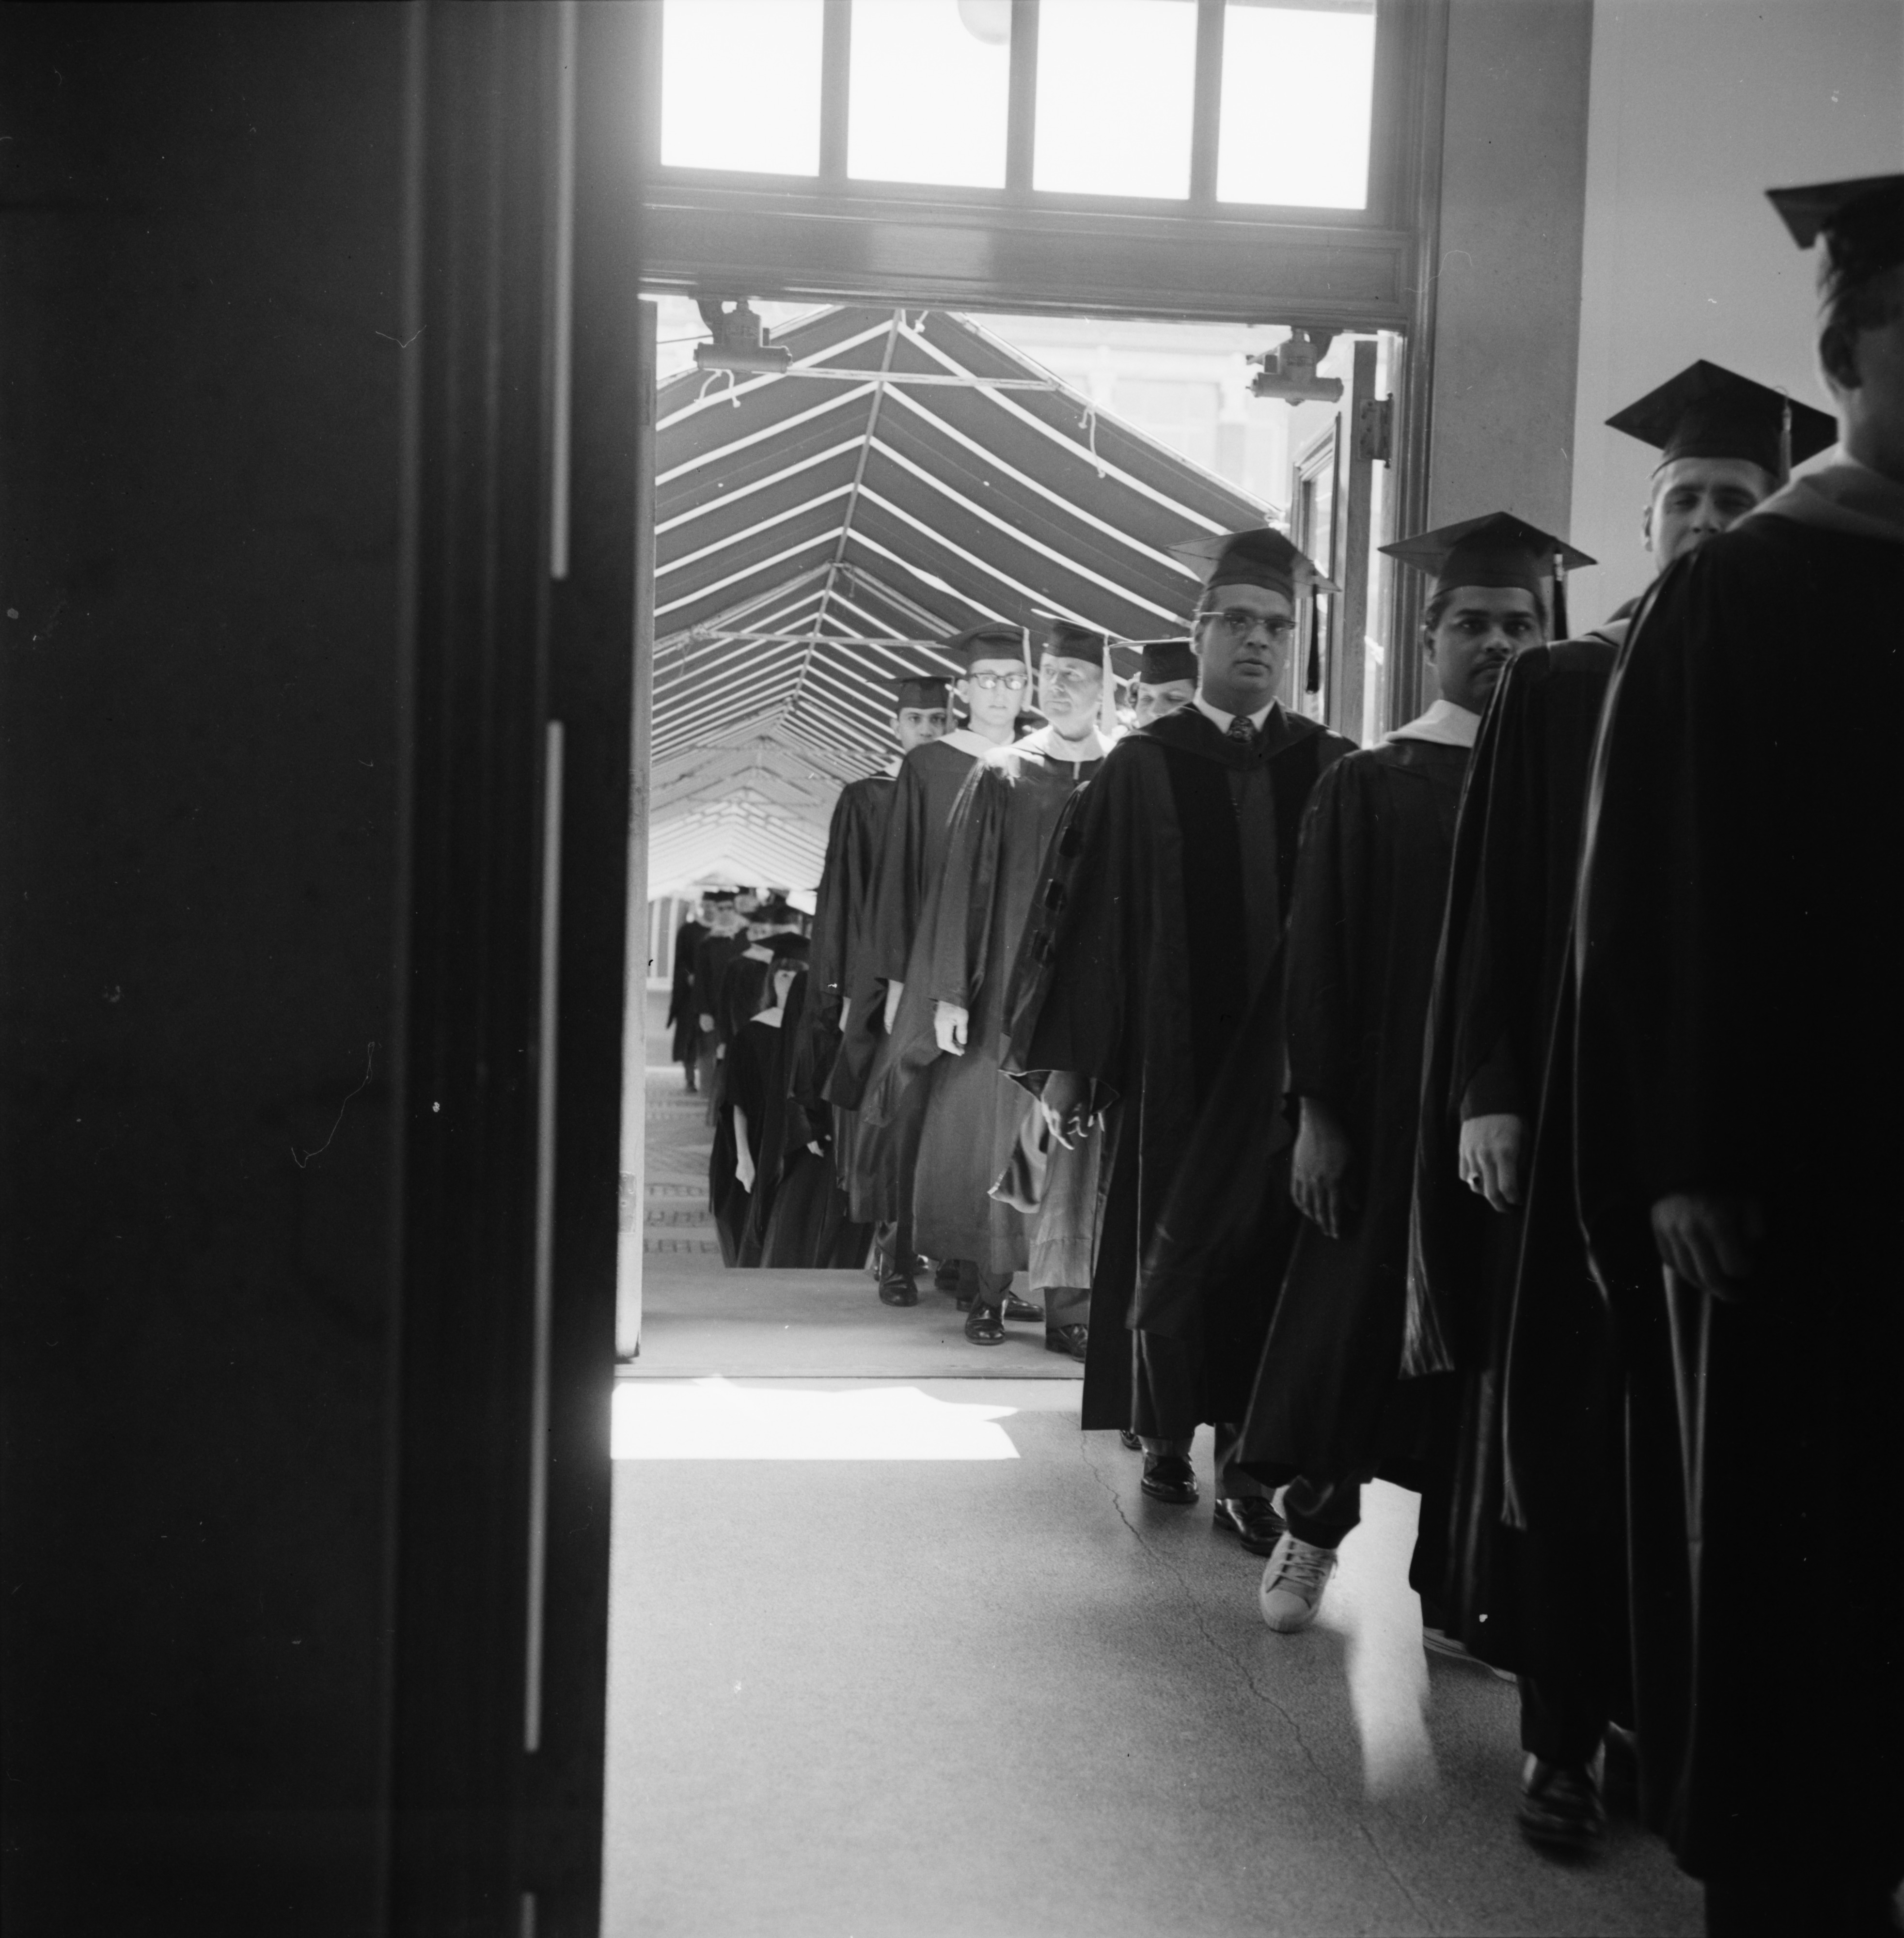 University of Michigan's Summer Commencement, August 1967 image